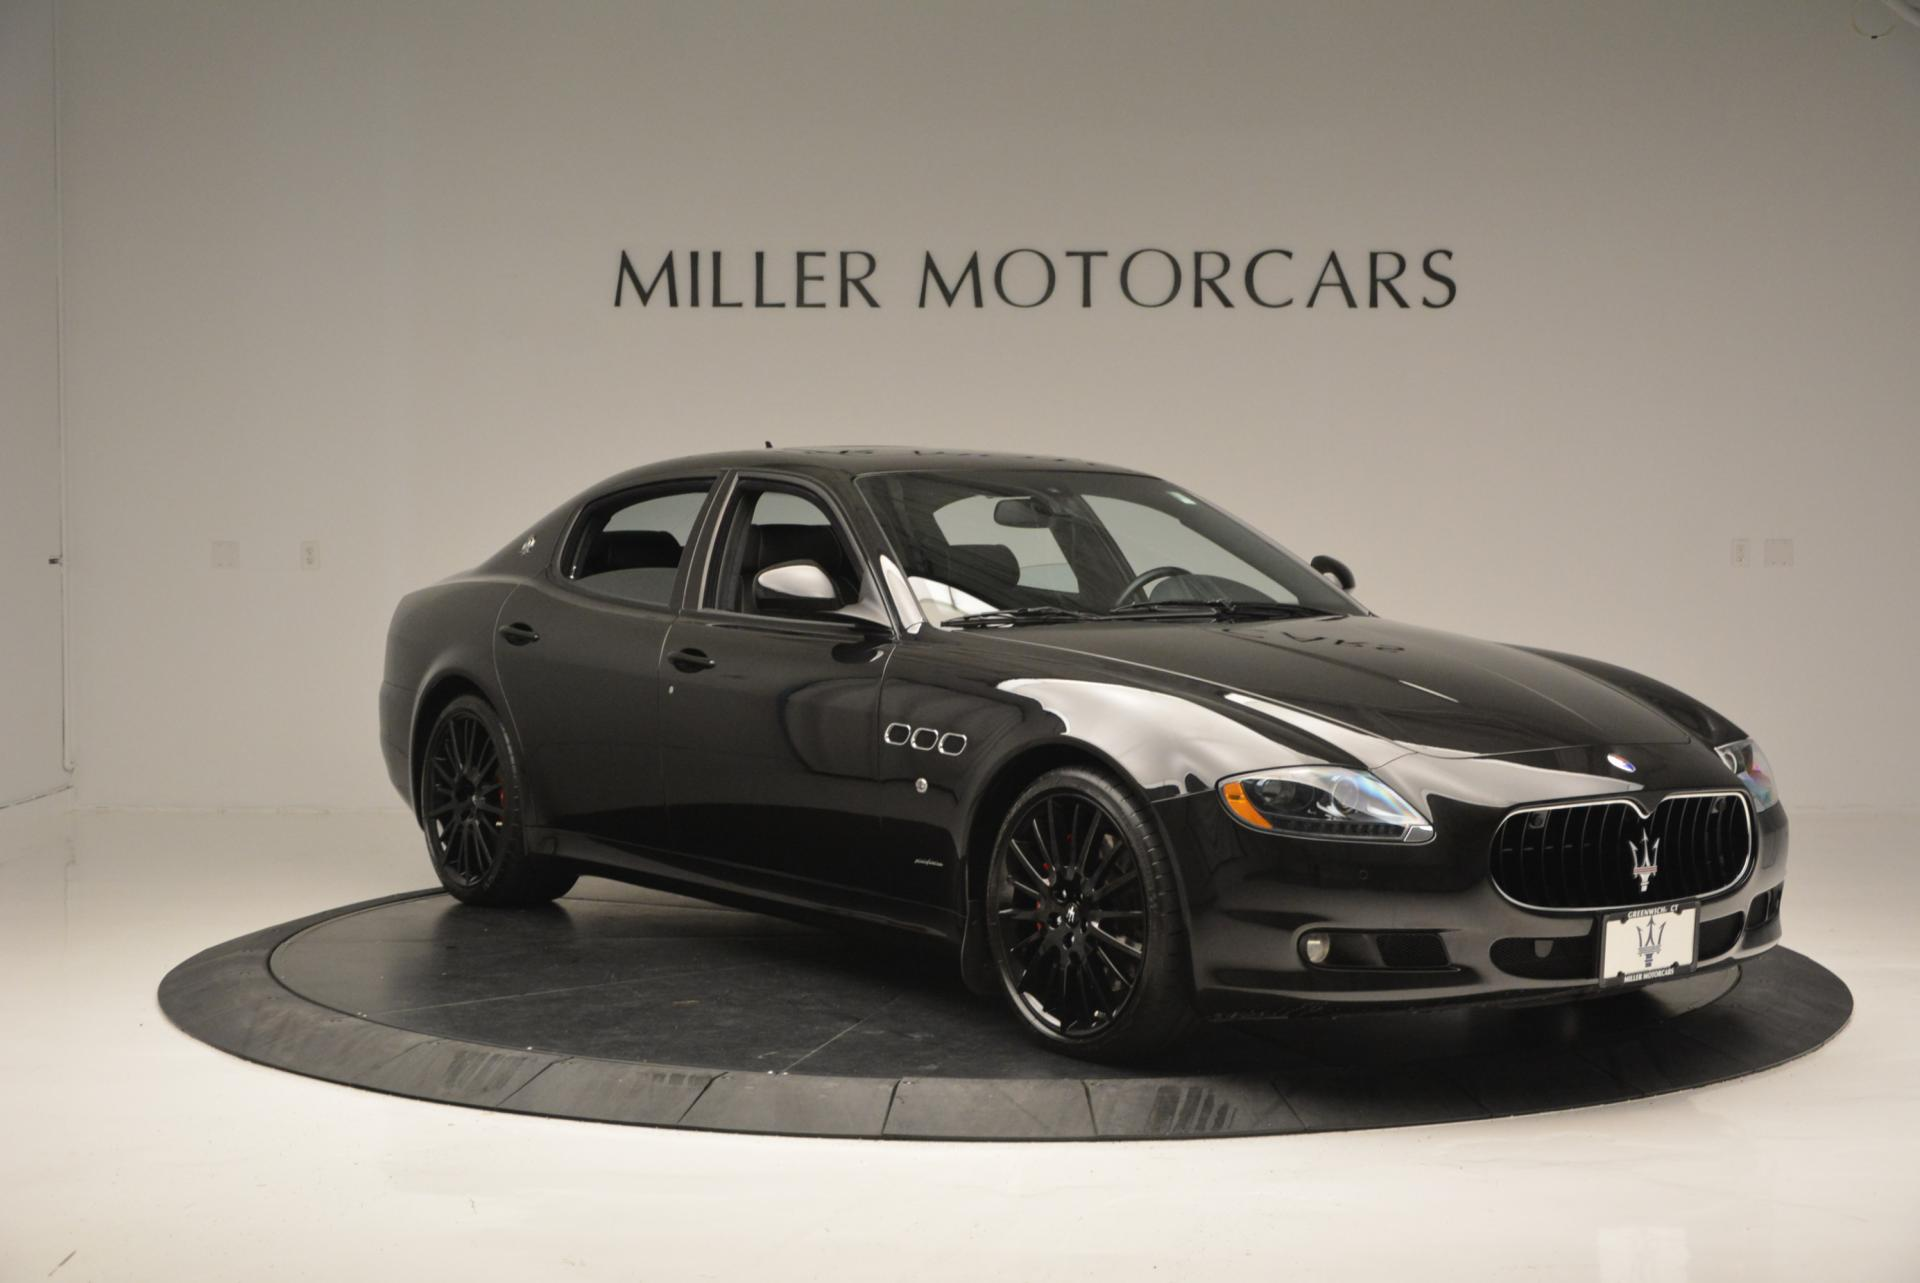 Used 2011 Maserati Quattroporte Sport GT S For Sale In Westport, CT 531_p11